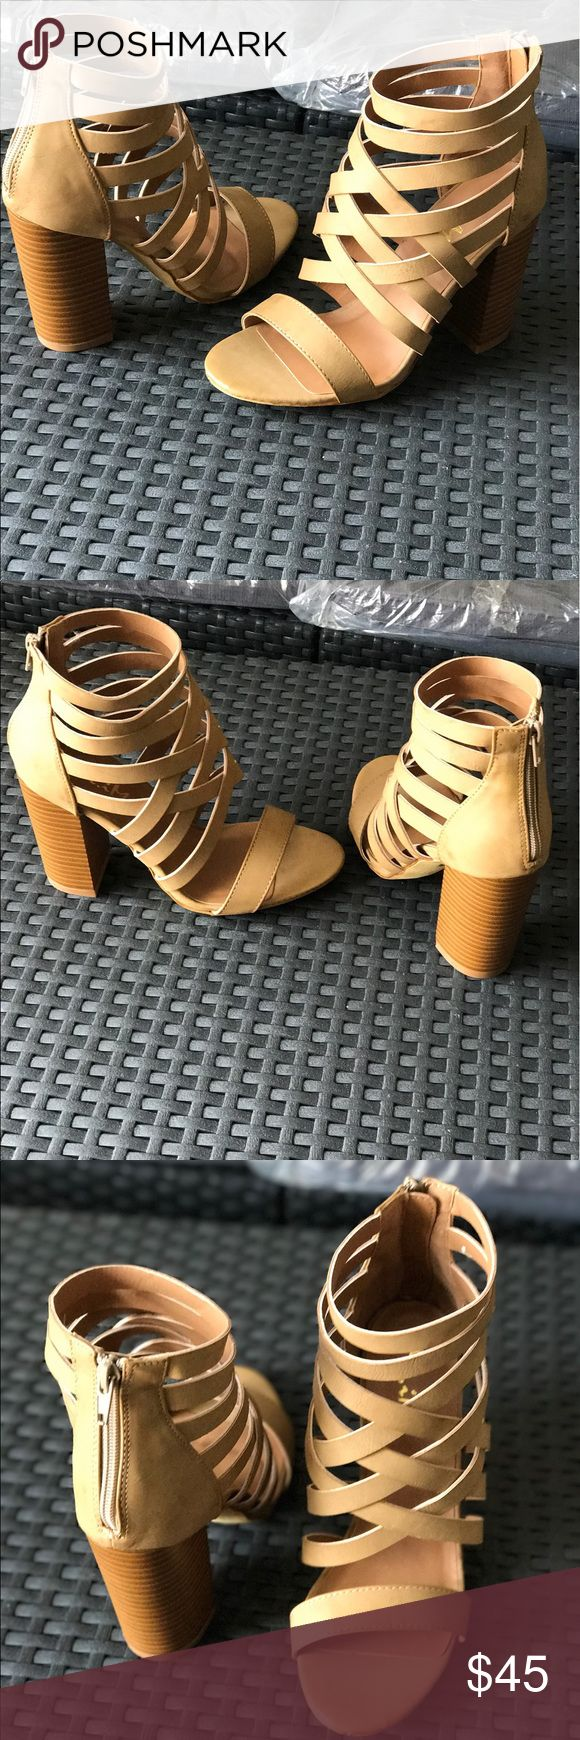 Ladies high top high chunky heels strappy sandals Very nice looking sandals, well made, high top with cross straps, 4 inches chunky heels, man made materials, back zipper, true to size medium fit. Light Khaki color. Brand new in box. NO TRADES boutique Shoes Heels